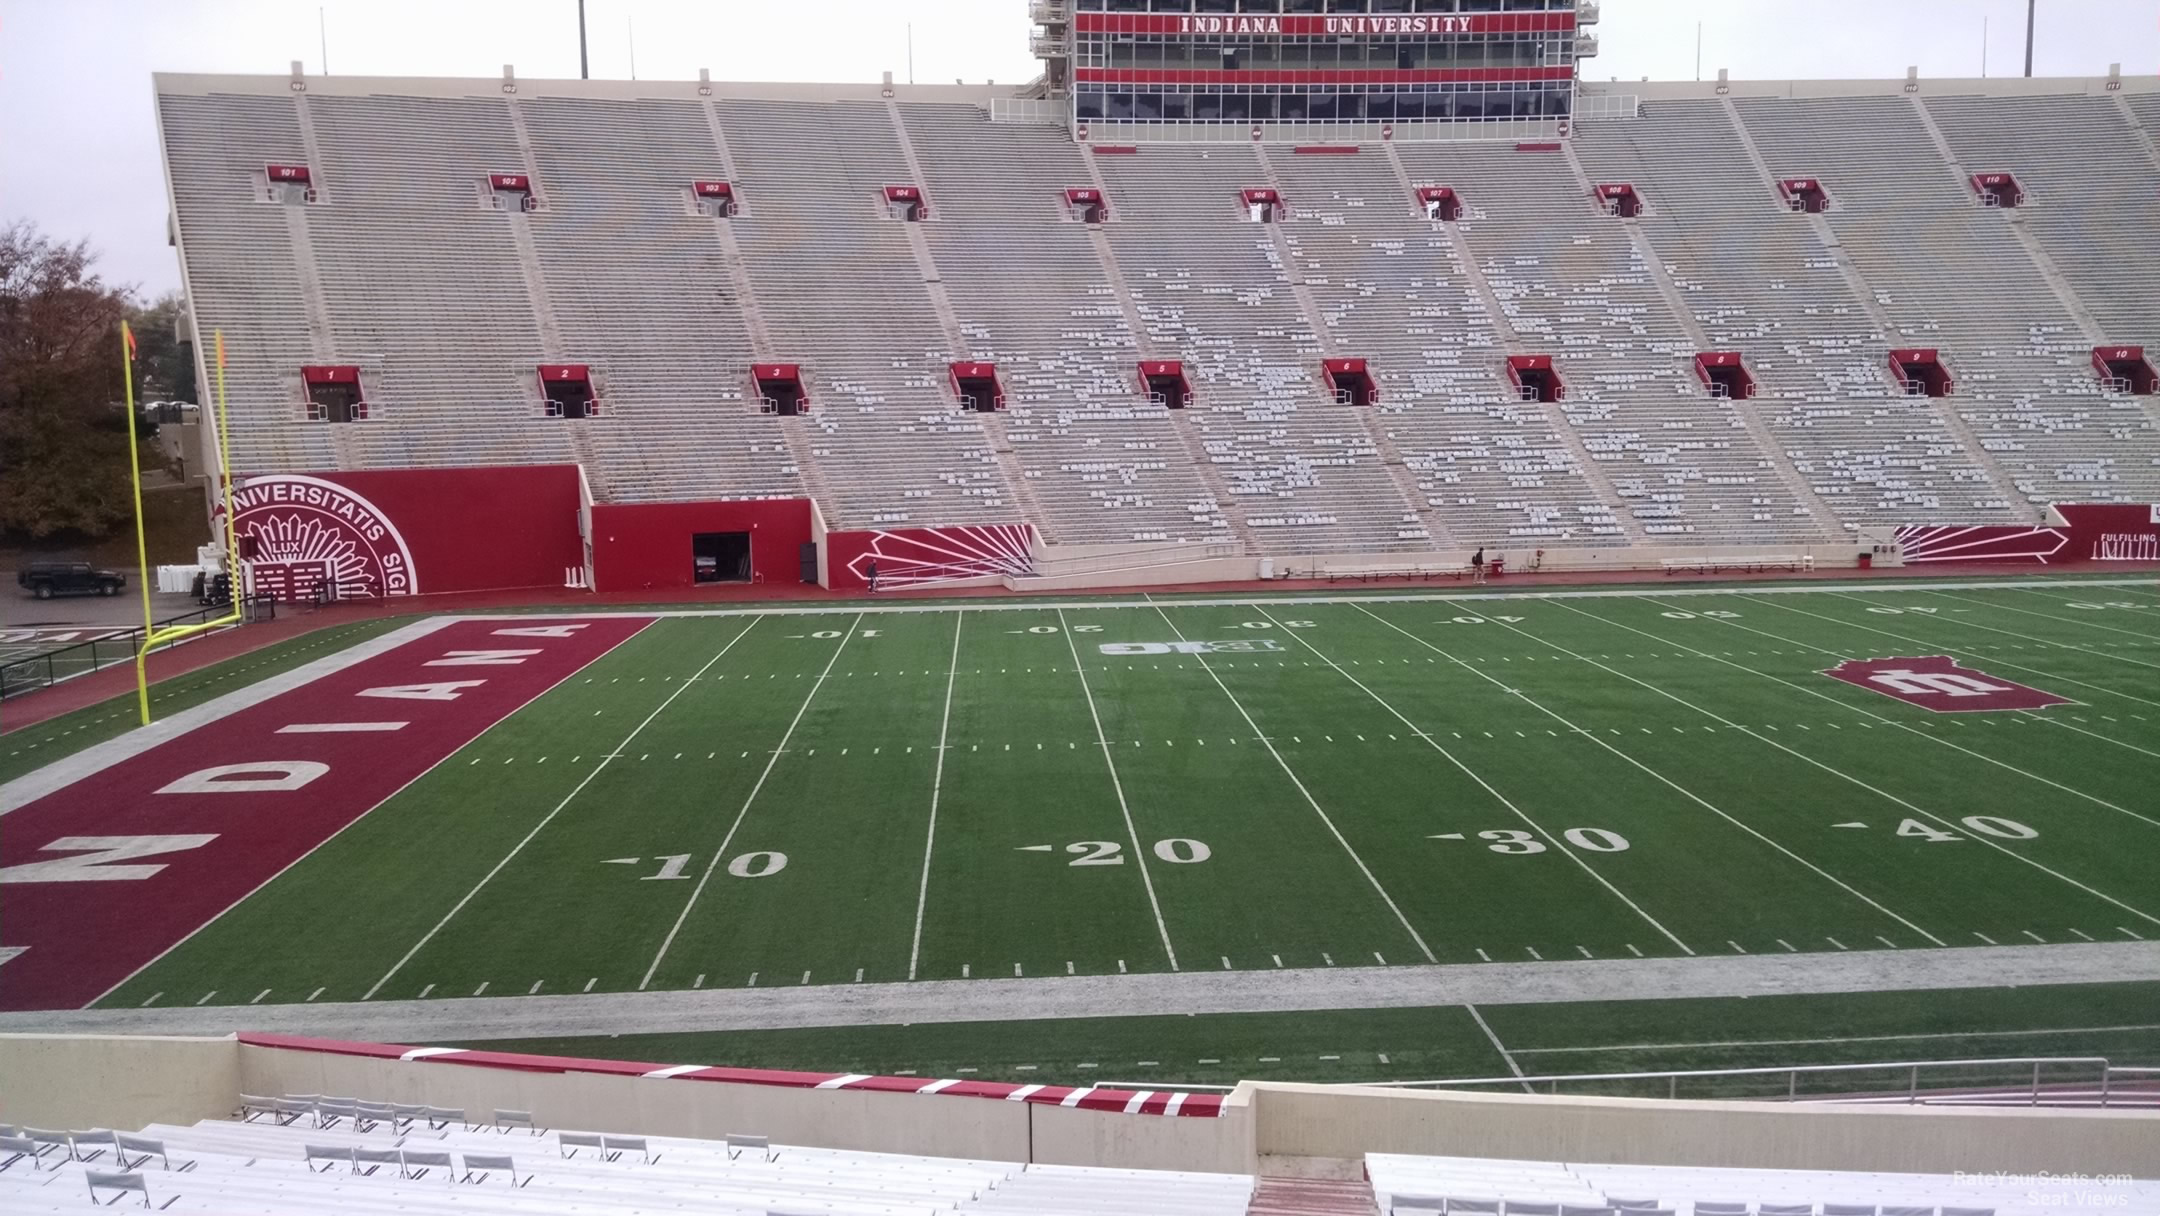 Seat View for Memorial Stadium - IN Section 29, Row 30